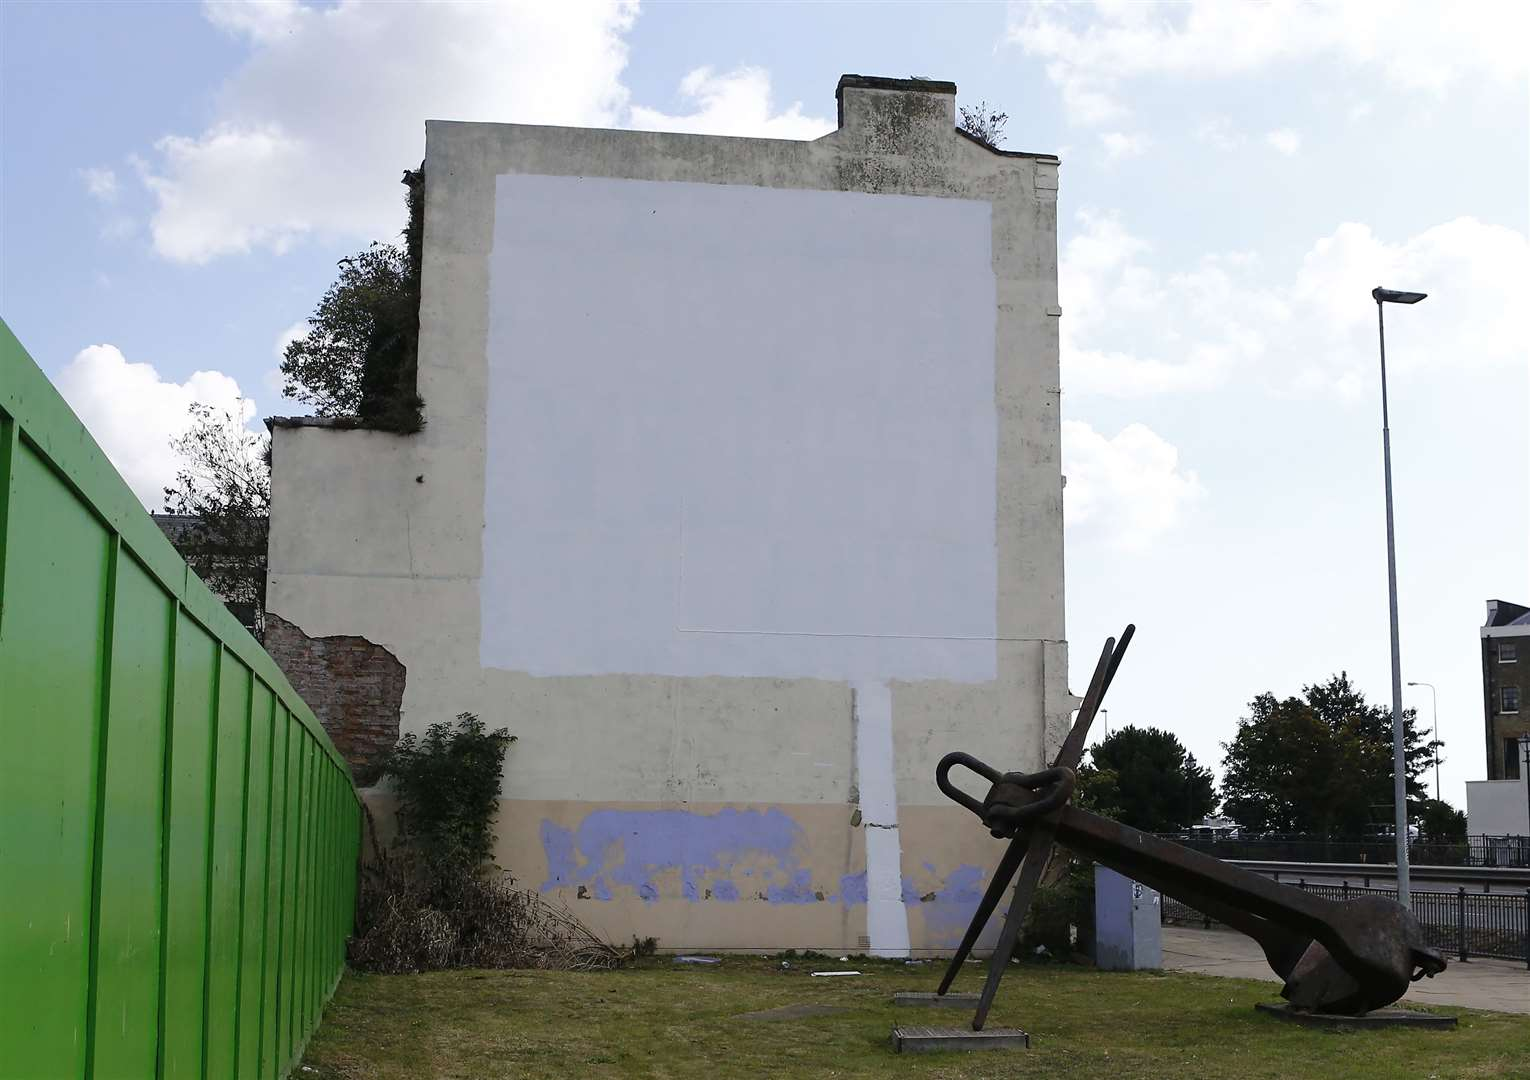 Blank canvas - the mural left with its white covering, photographed just after 11am todayPicture: Matt Bristow.